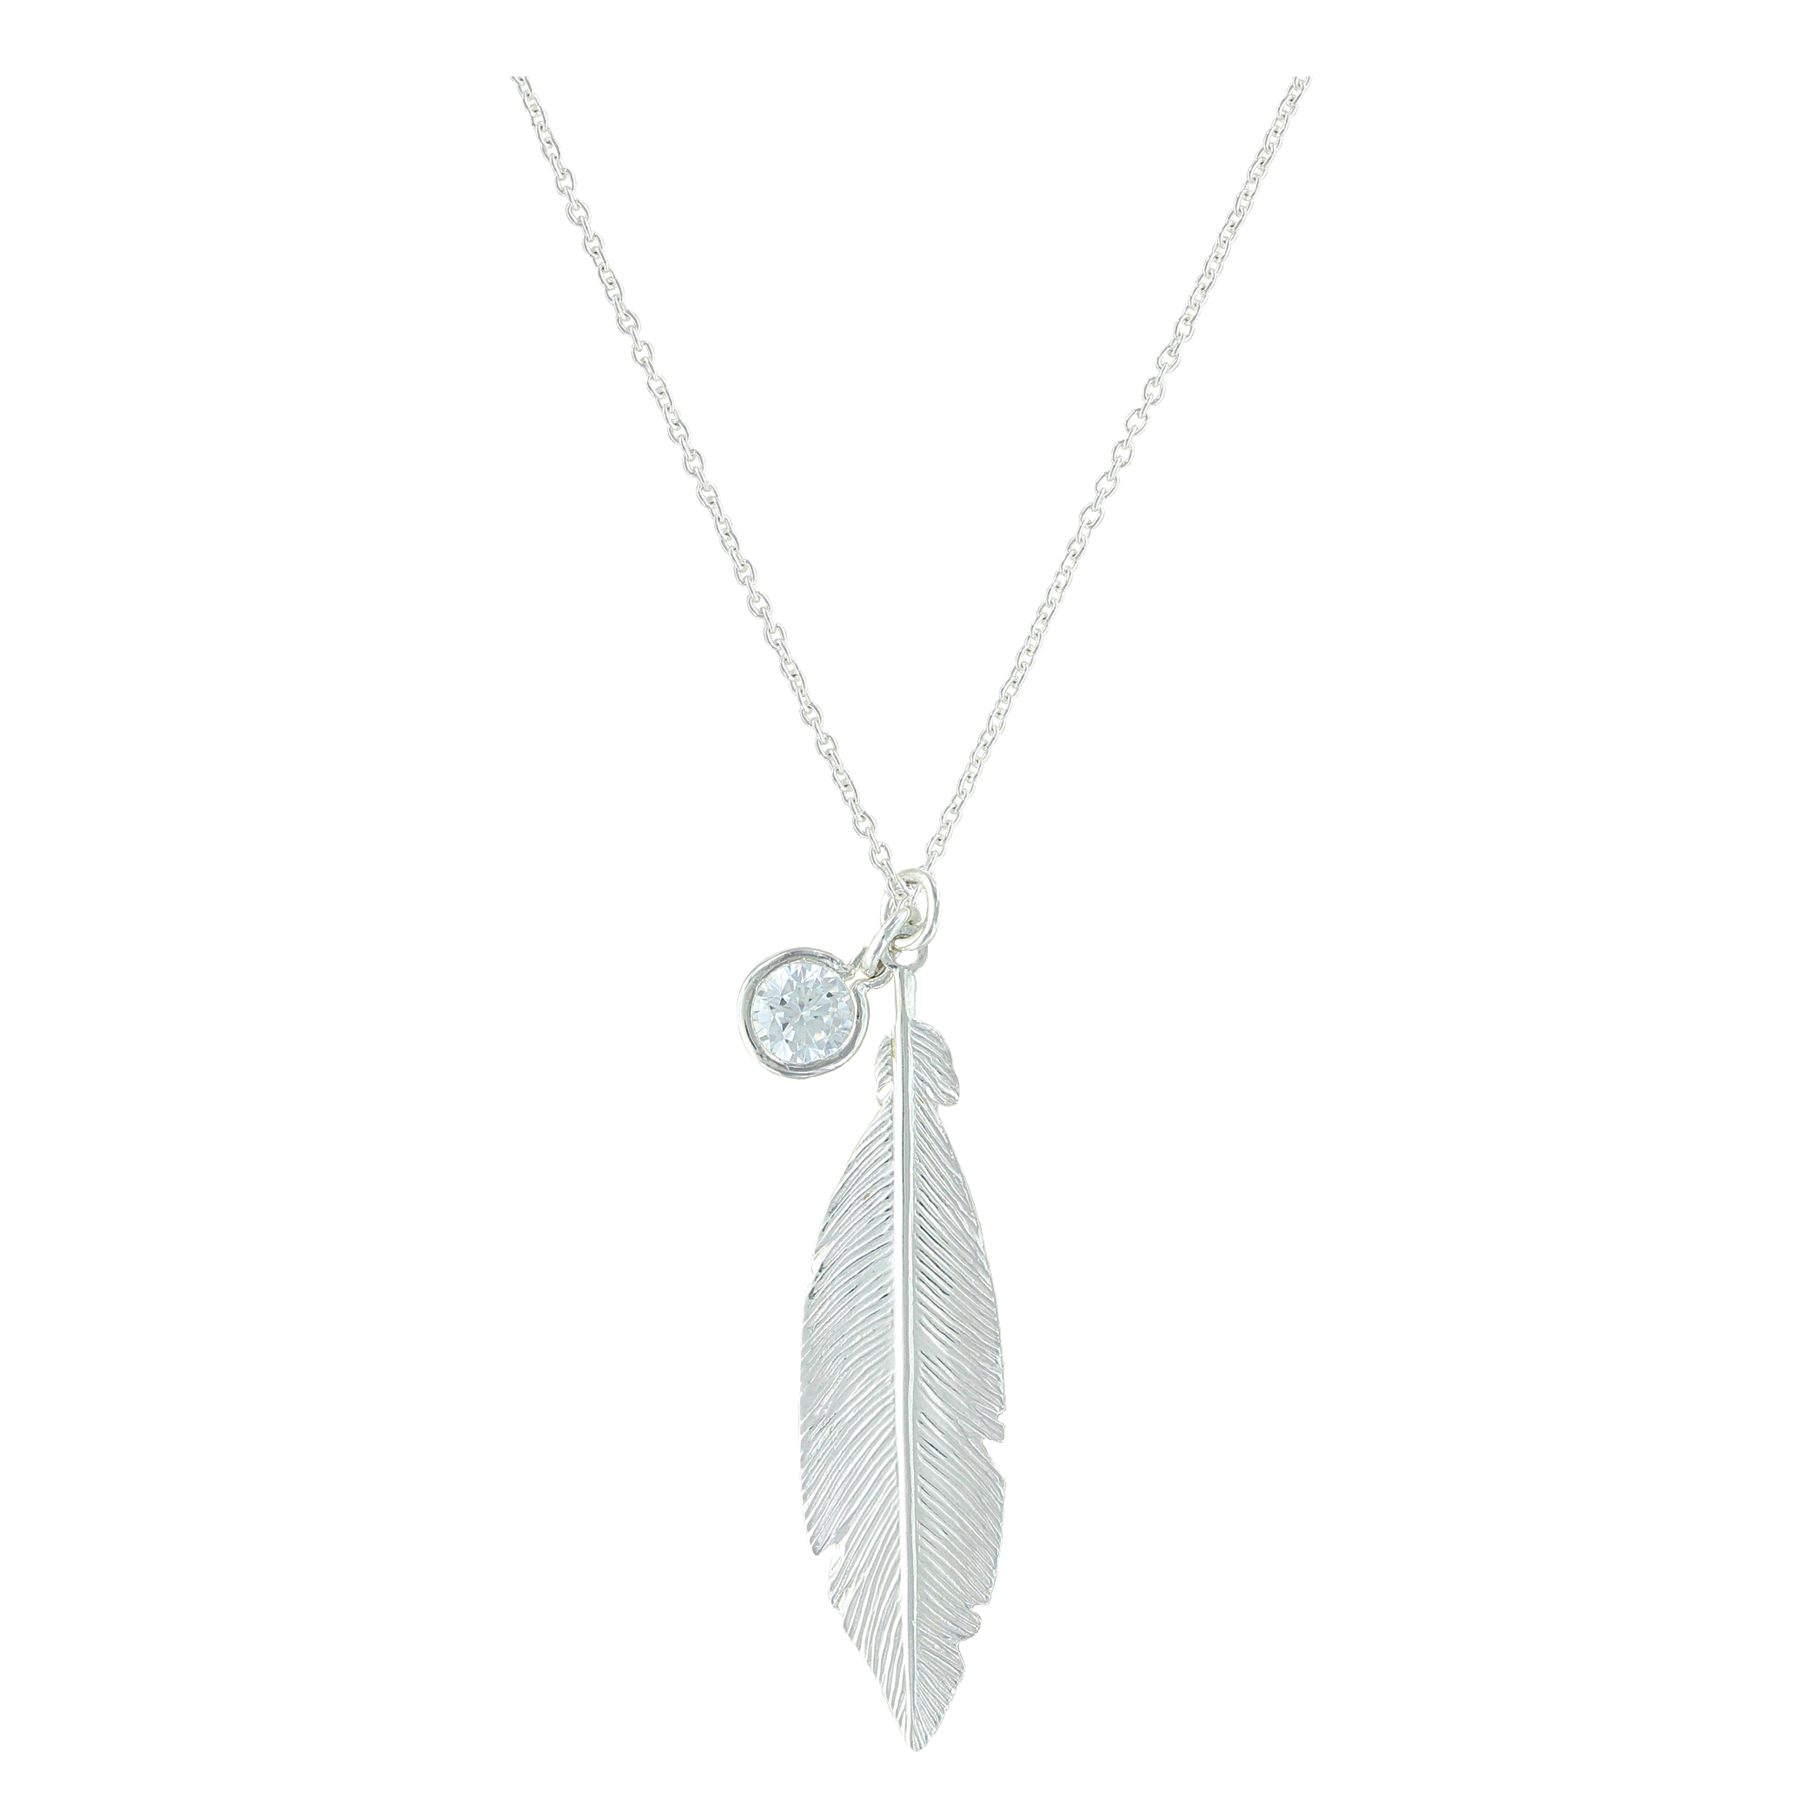 Starlight Feather Charm Necklace Regarding Most Recent Shimmering Feather Pendant Necklaces (View 20 of 25)